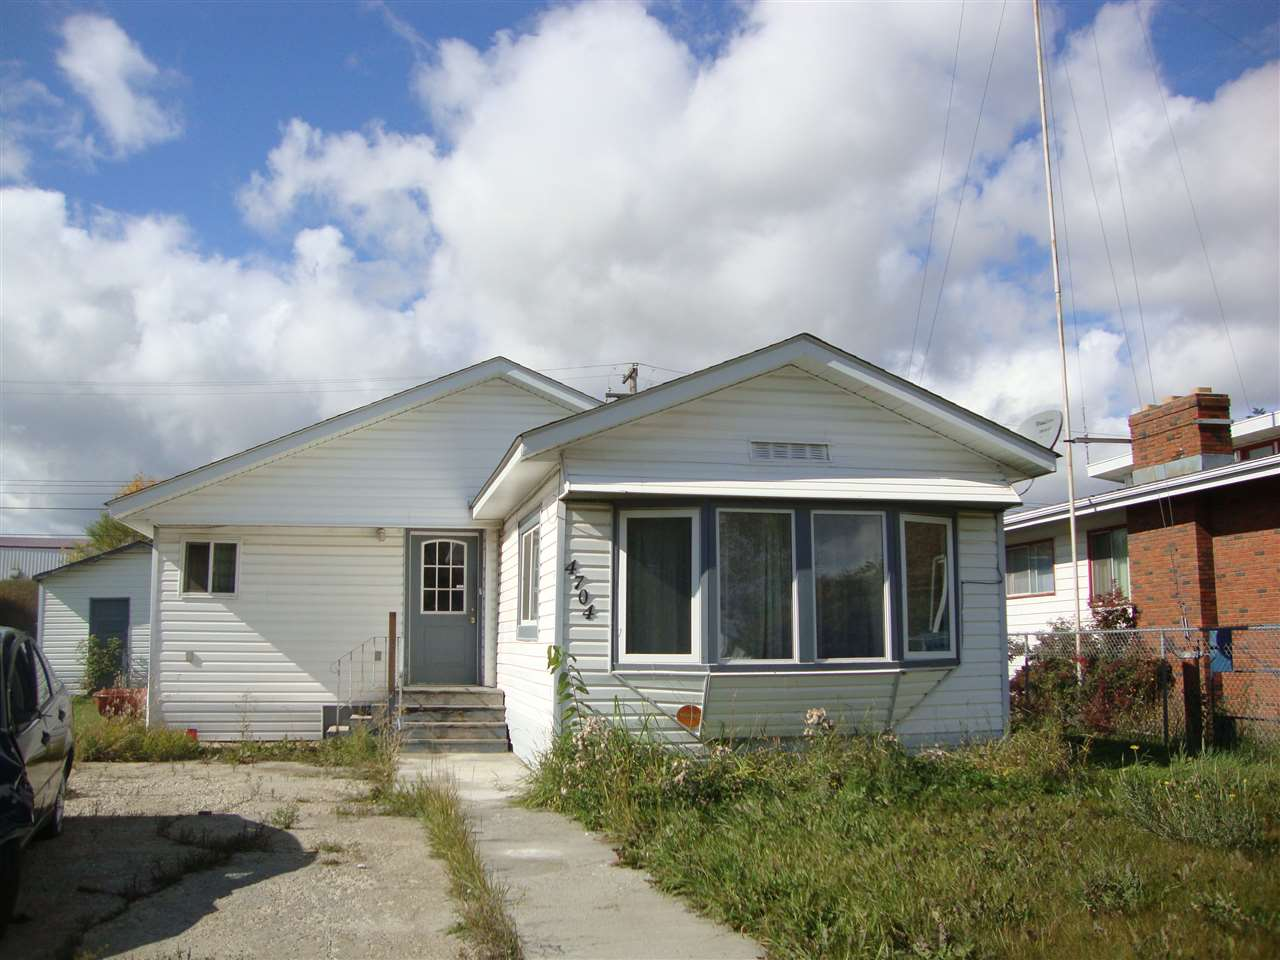 Home, storage shed, and huge shop on its own lot in Redwater.  Seller's father built this residence around a single mobile, added an addition, & re-sided all. Shop measures 15 x30 , has infloor heating, and an addition for storage.  Needs some work but good opportunity to own property for low dollars!